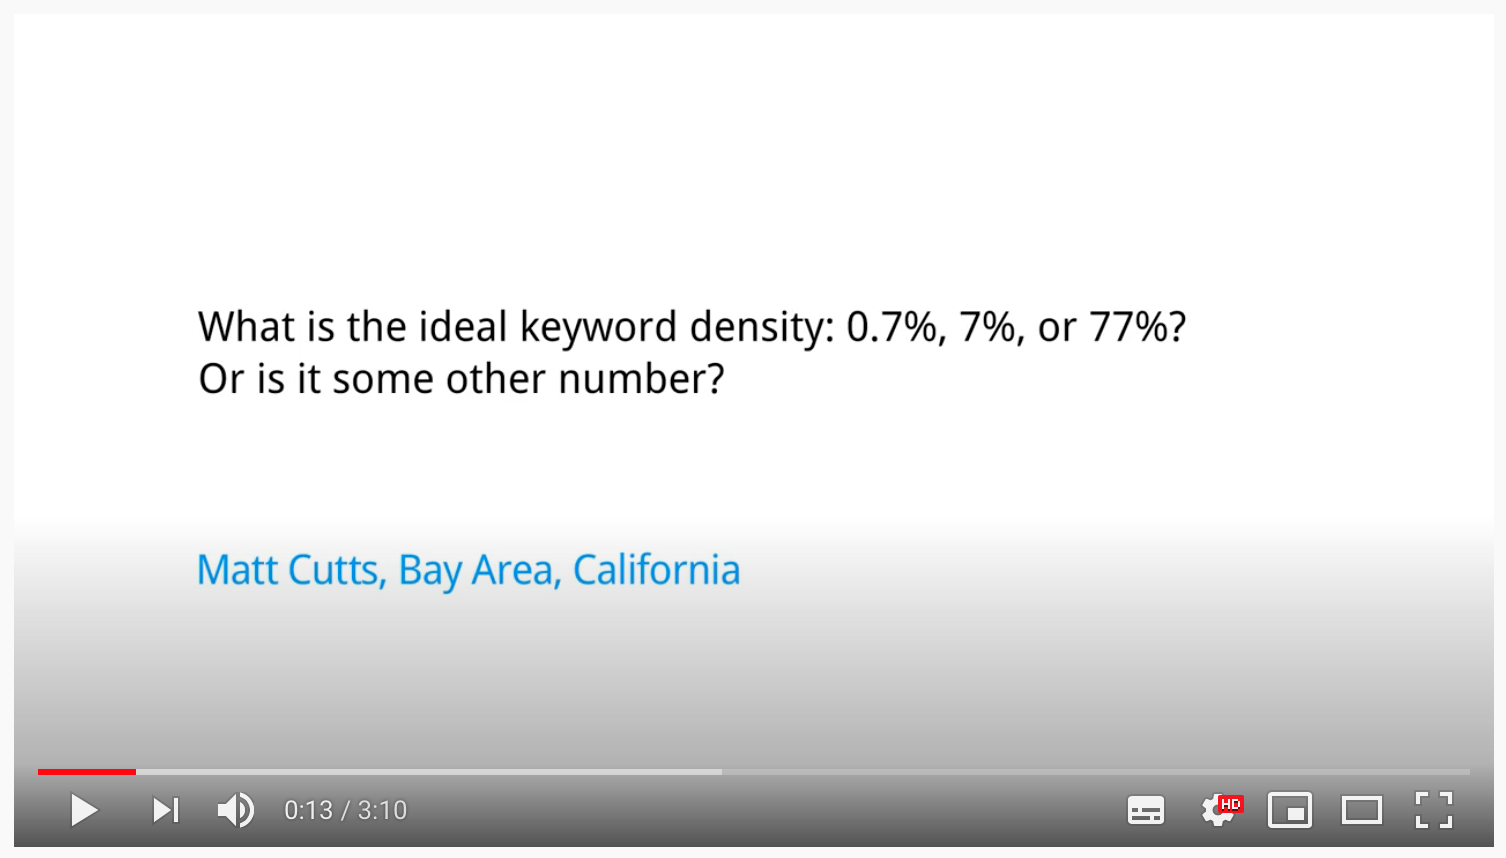 What is the ideal keyword density?